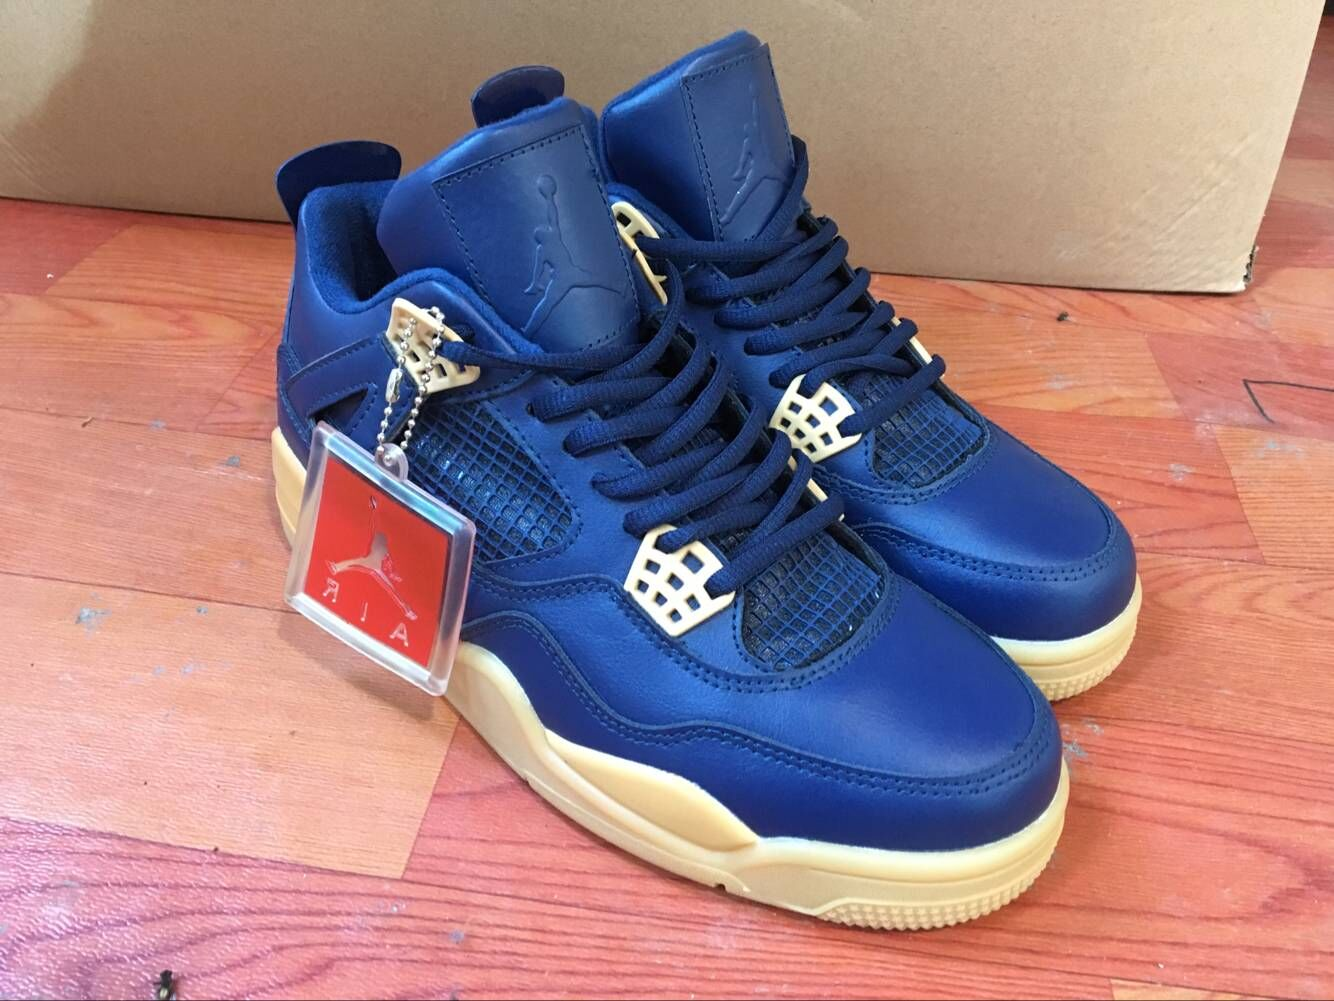 Air Jordan 4 Bekaa Blue Shoes